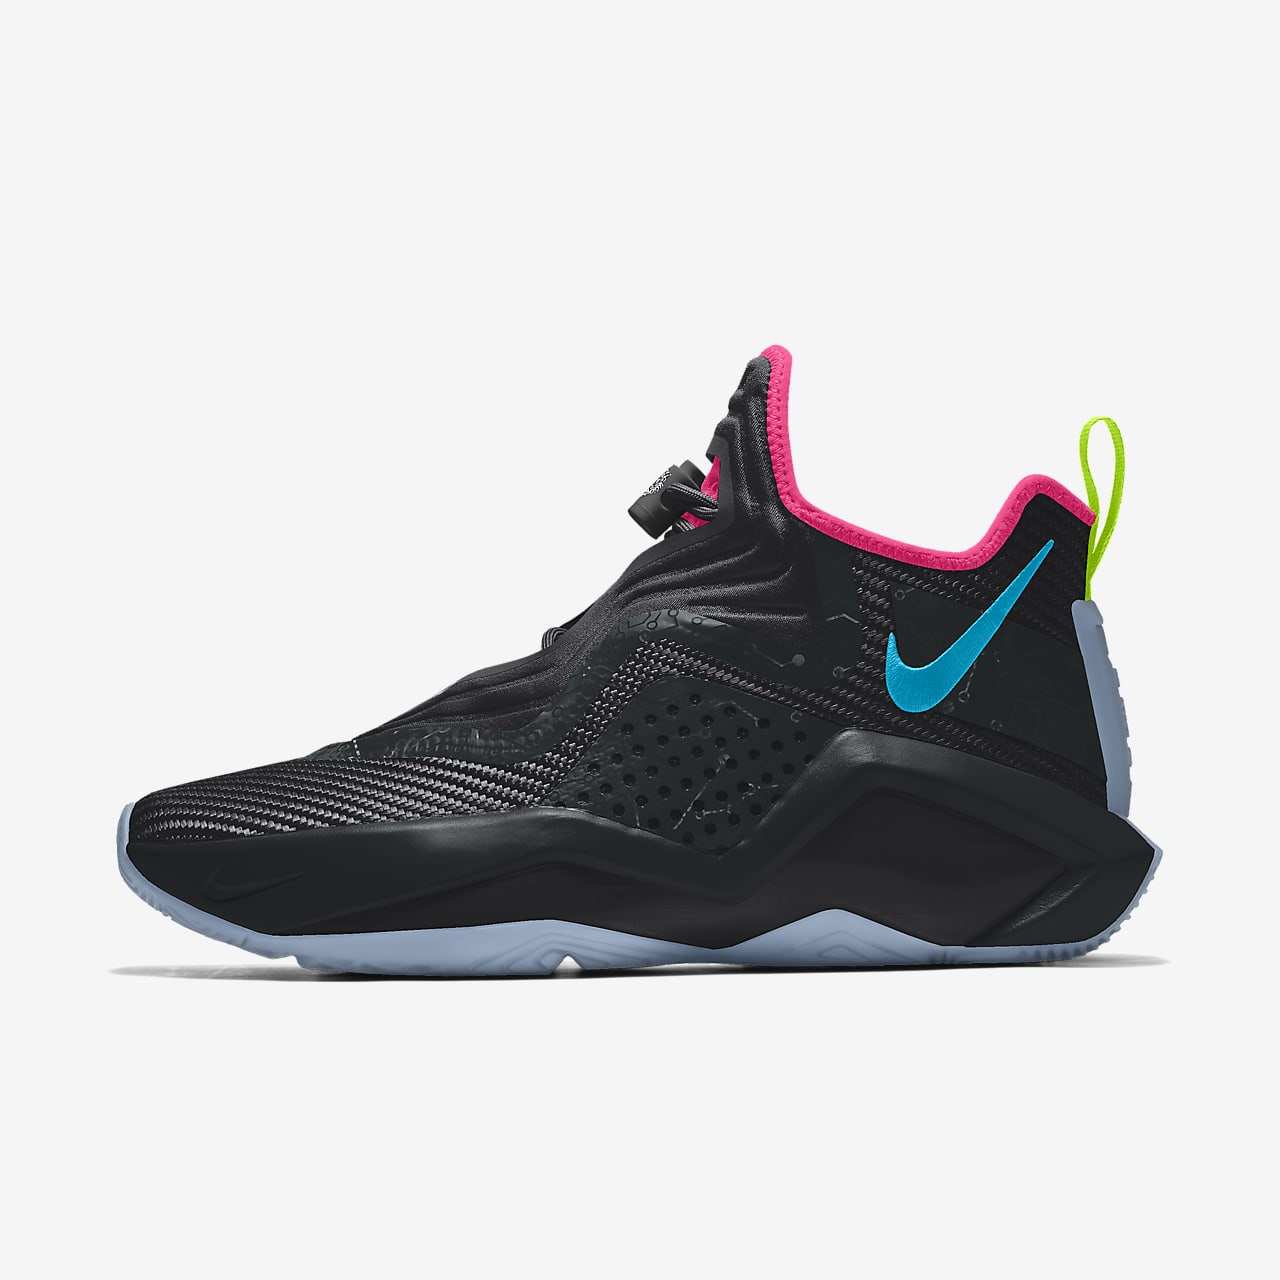 Chaussure de basketball personnalisable LeBron Soldier 14 By You